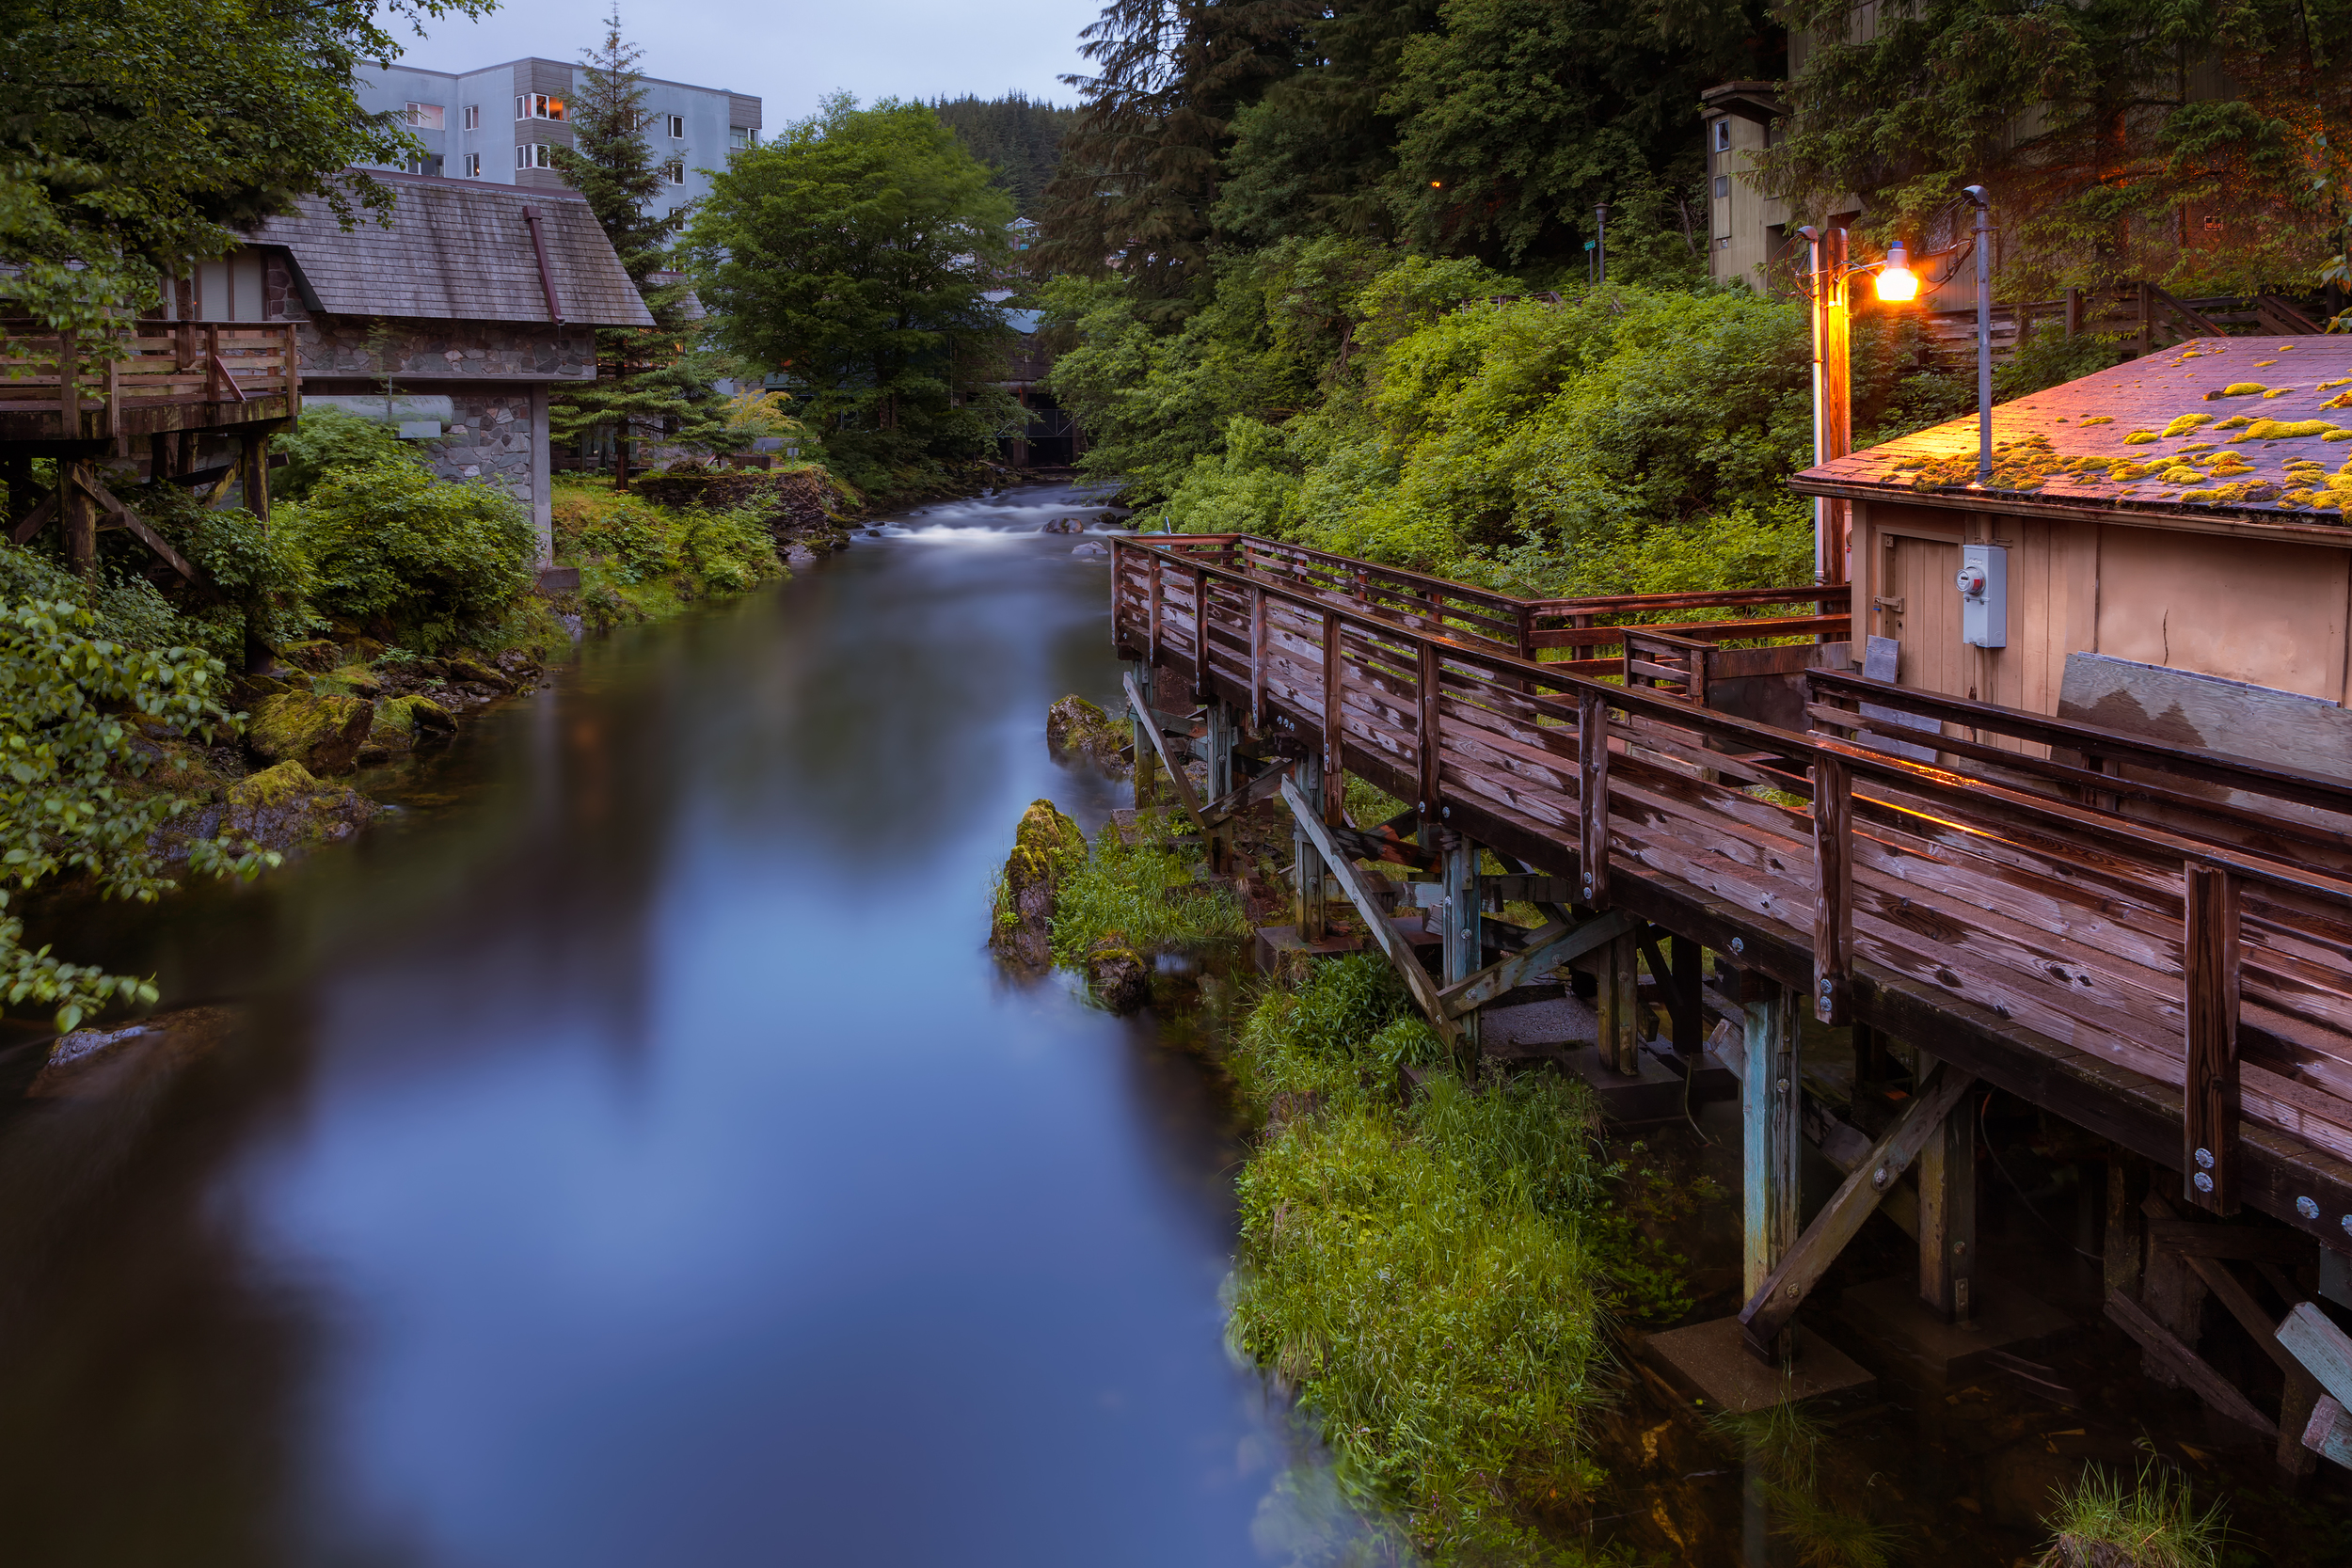 """Far edge of Creek Street. Got this shot with my Canon 5d Mark 2 last night at about 9pm (notice how bright the sky still is).  As pretty and iconic as it is now, during the 1920's Creek Street was actually Ketchikan's red light district, or as they say around here, a place """"Where more men than fish went upstream to spawn."""""""